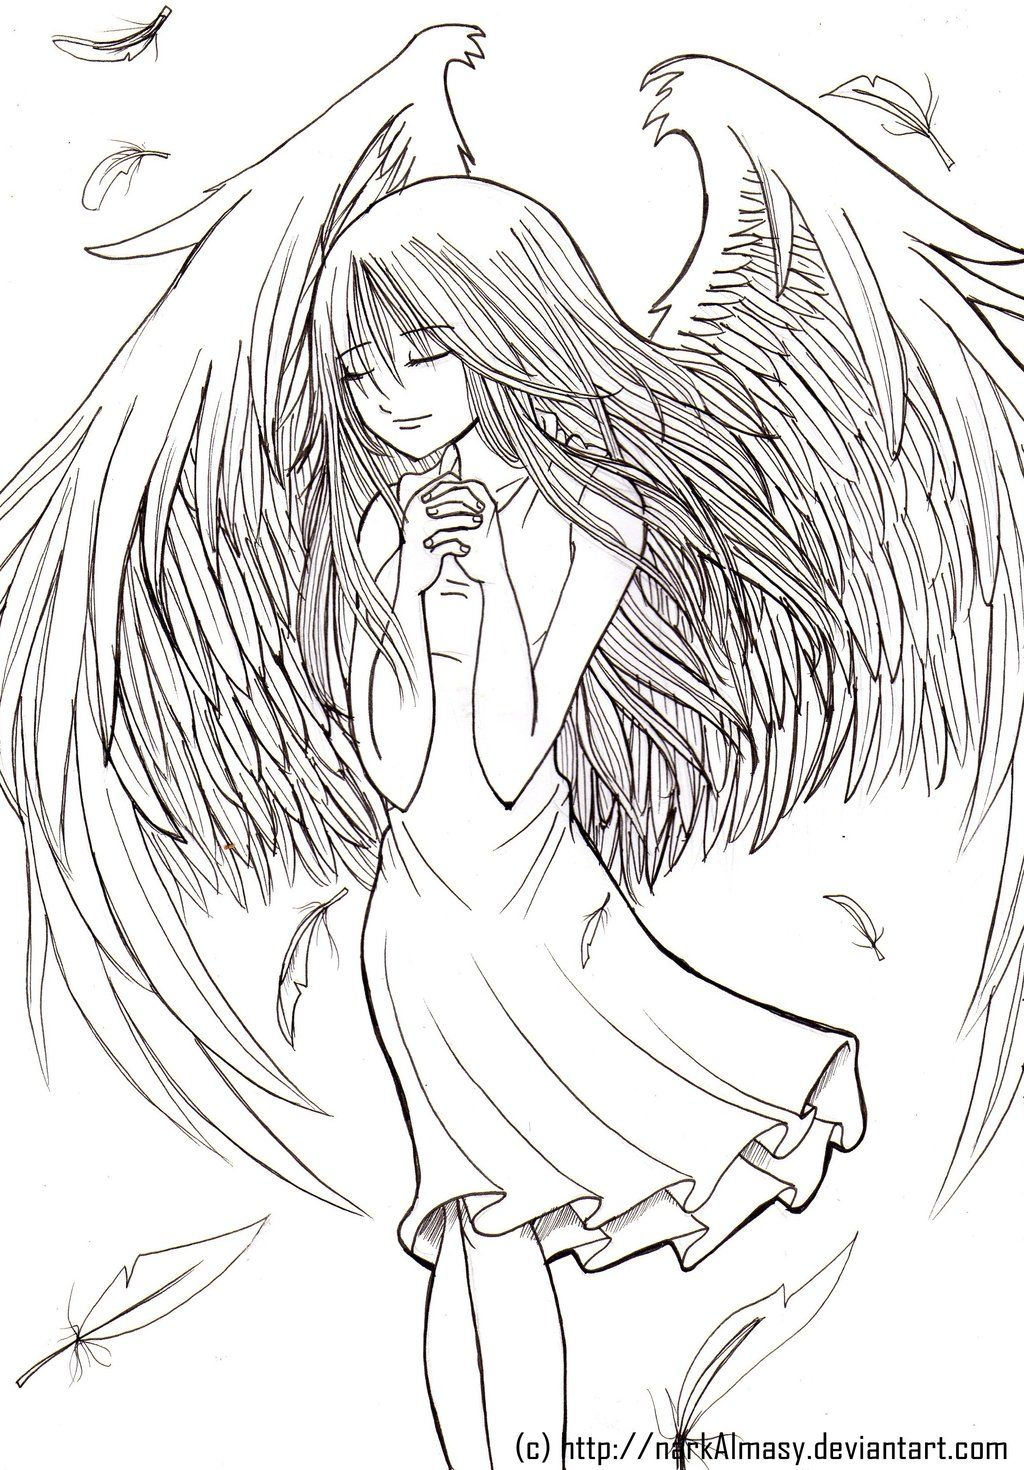 Lineart fairy by narkalmasy on deviantart dessins pinterest